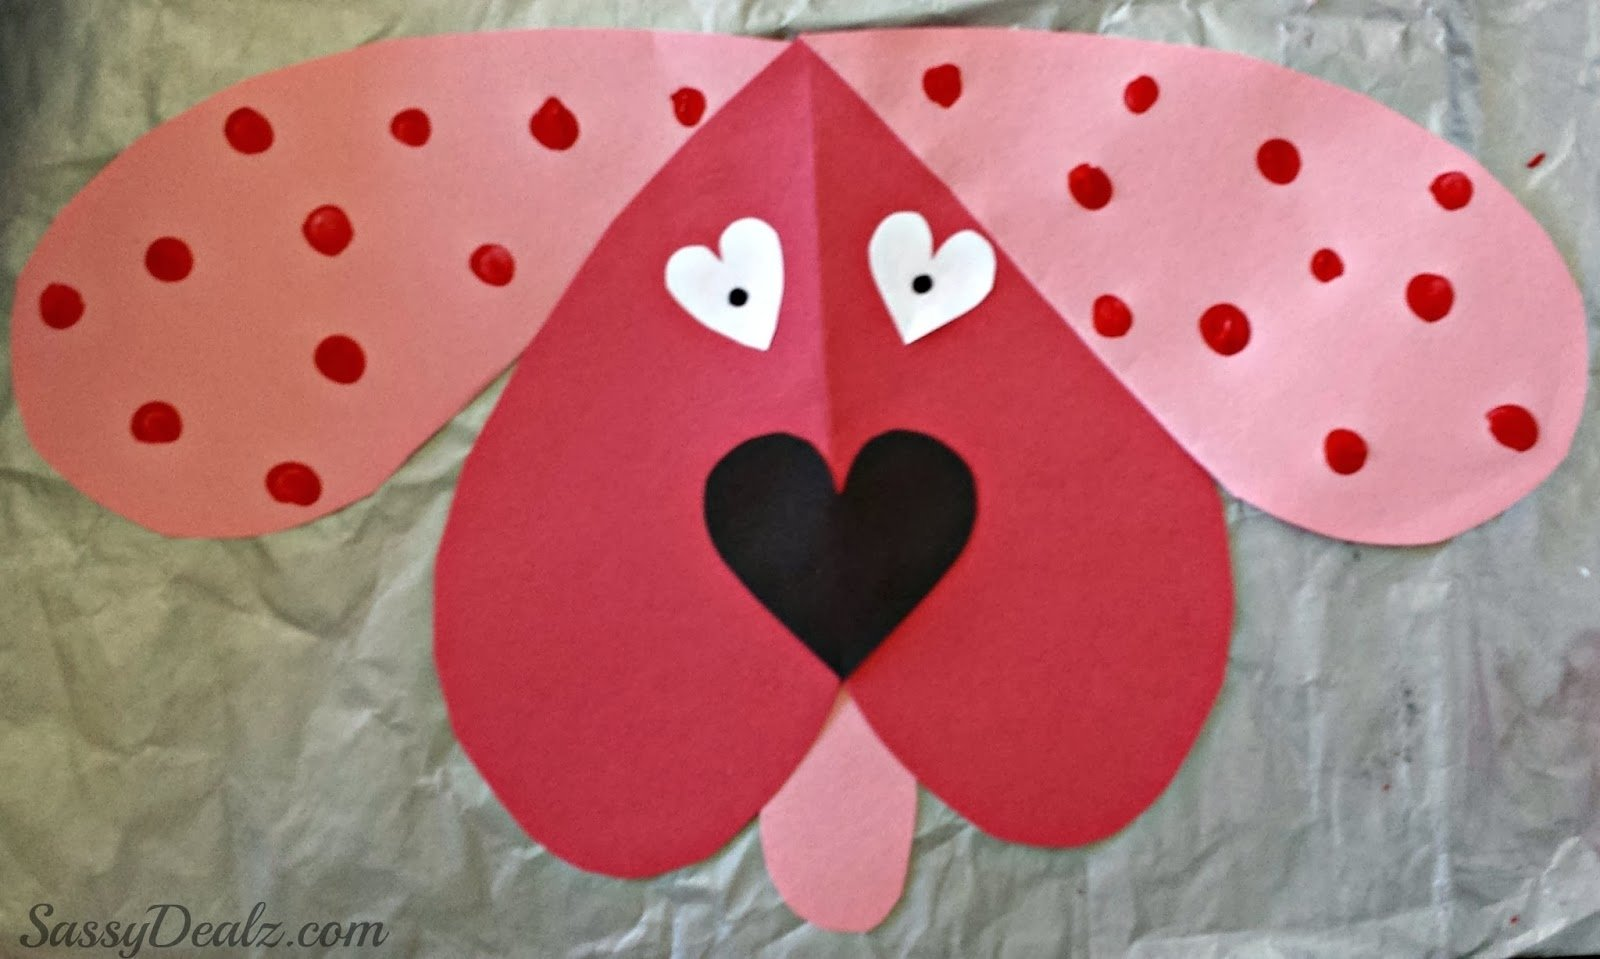 10 Fashionable Valentines Day Craft Ideas For Kids valentines day craft kids sassy dealz cute dog tierra este 11376 1 2020